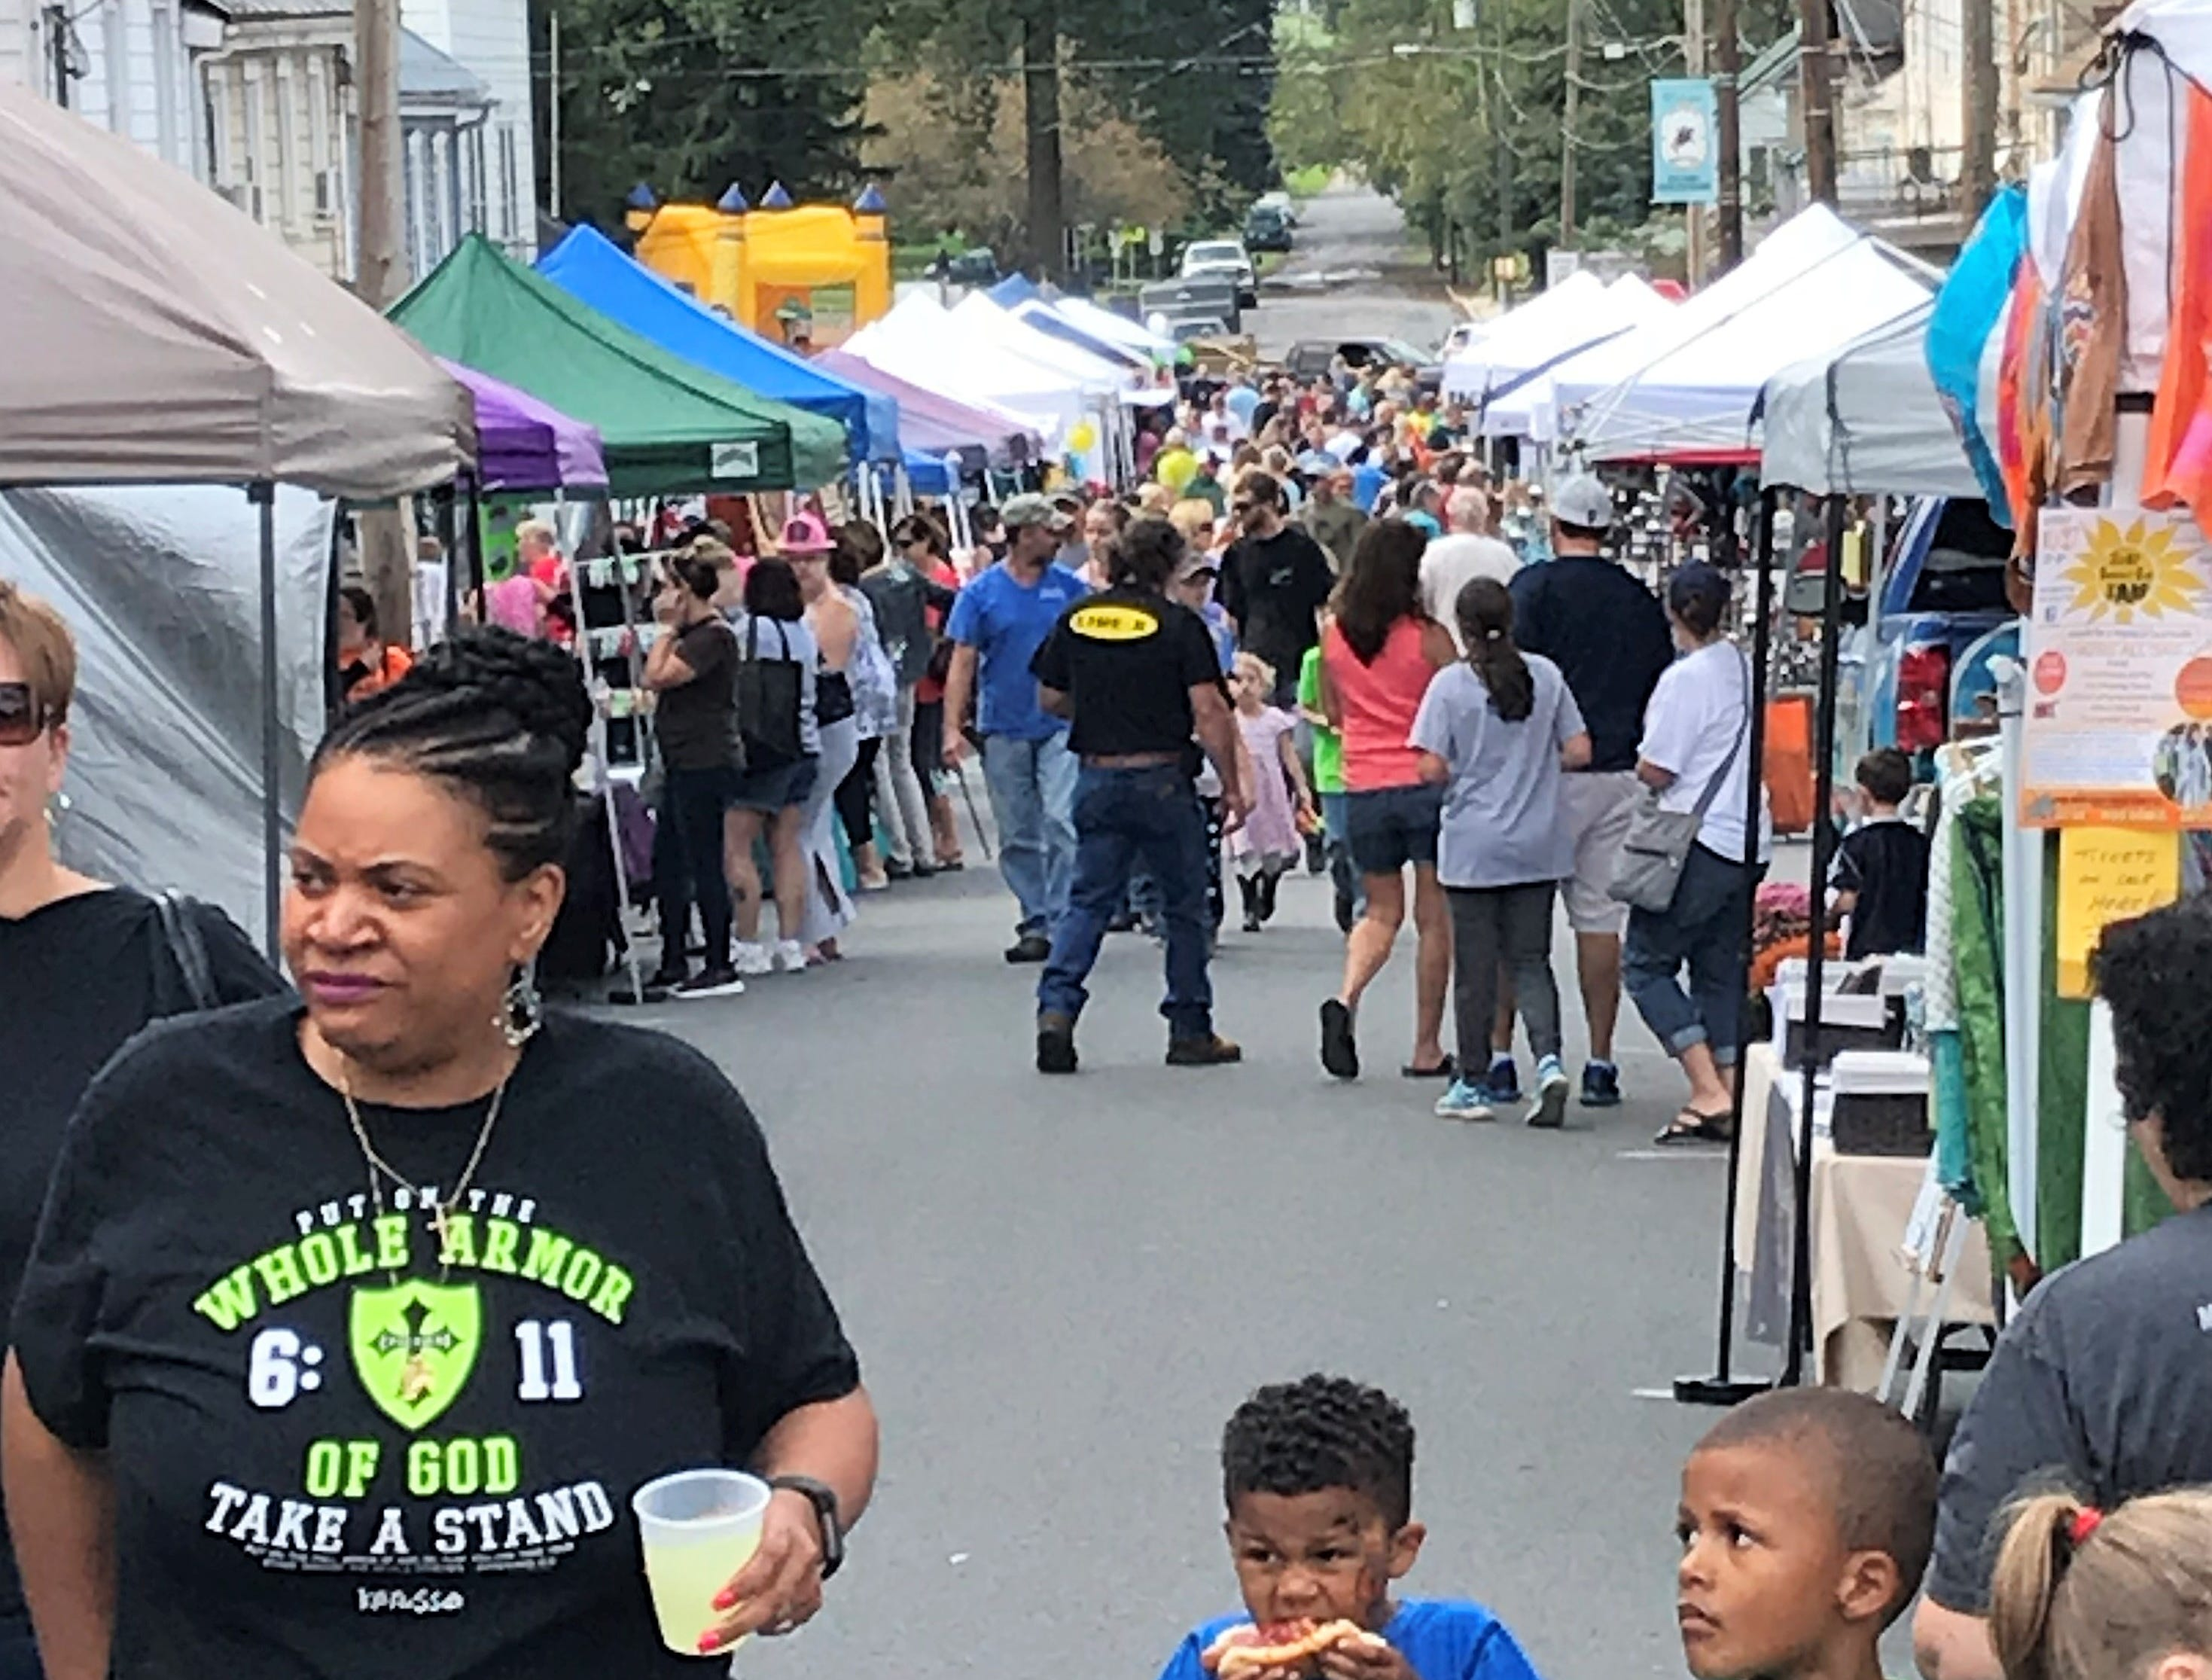 Thousands of people and dozens of vendors came to Mercersburg  Townfest on Saturday, Sept. 29, 2018. Craft, art, activity and food vendors lined both sides of Seminary Street and the square. The annual Mercersburg Beer and Wine Festival took also took place.